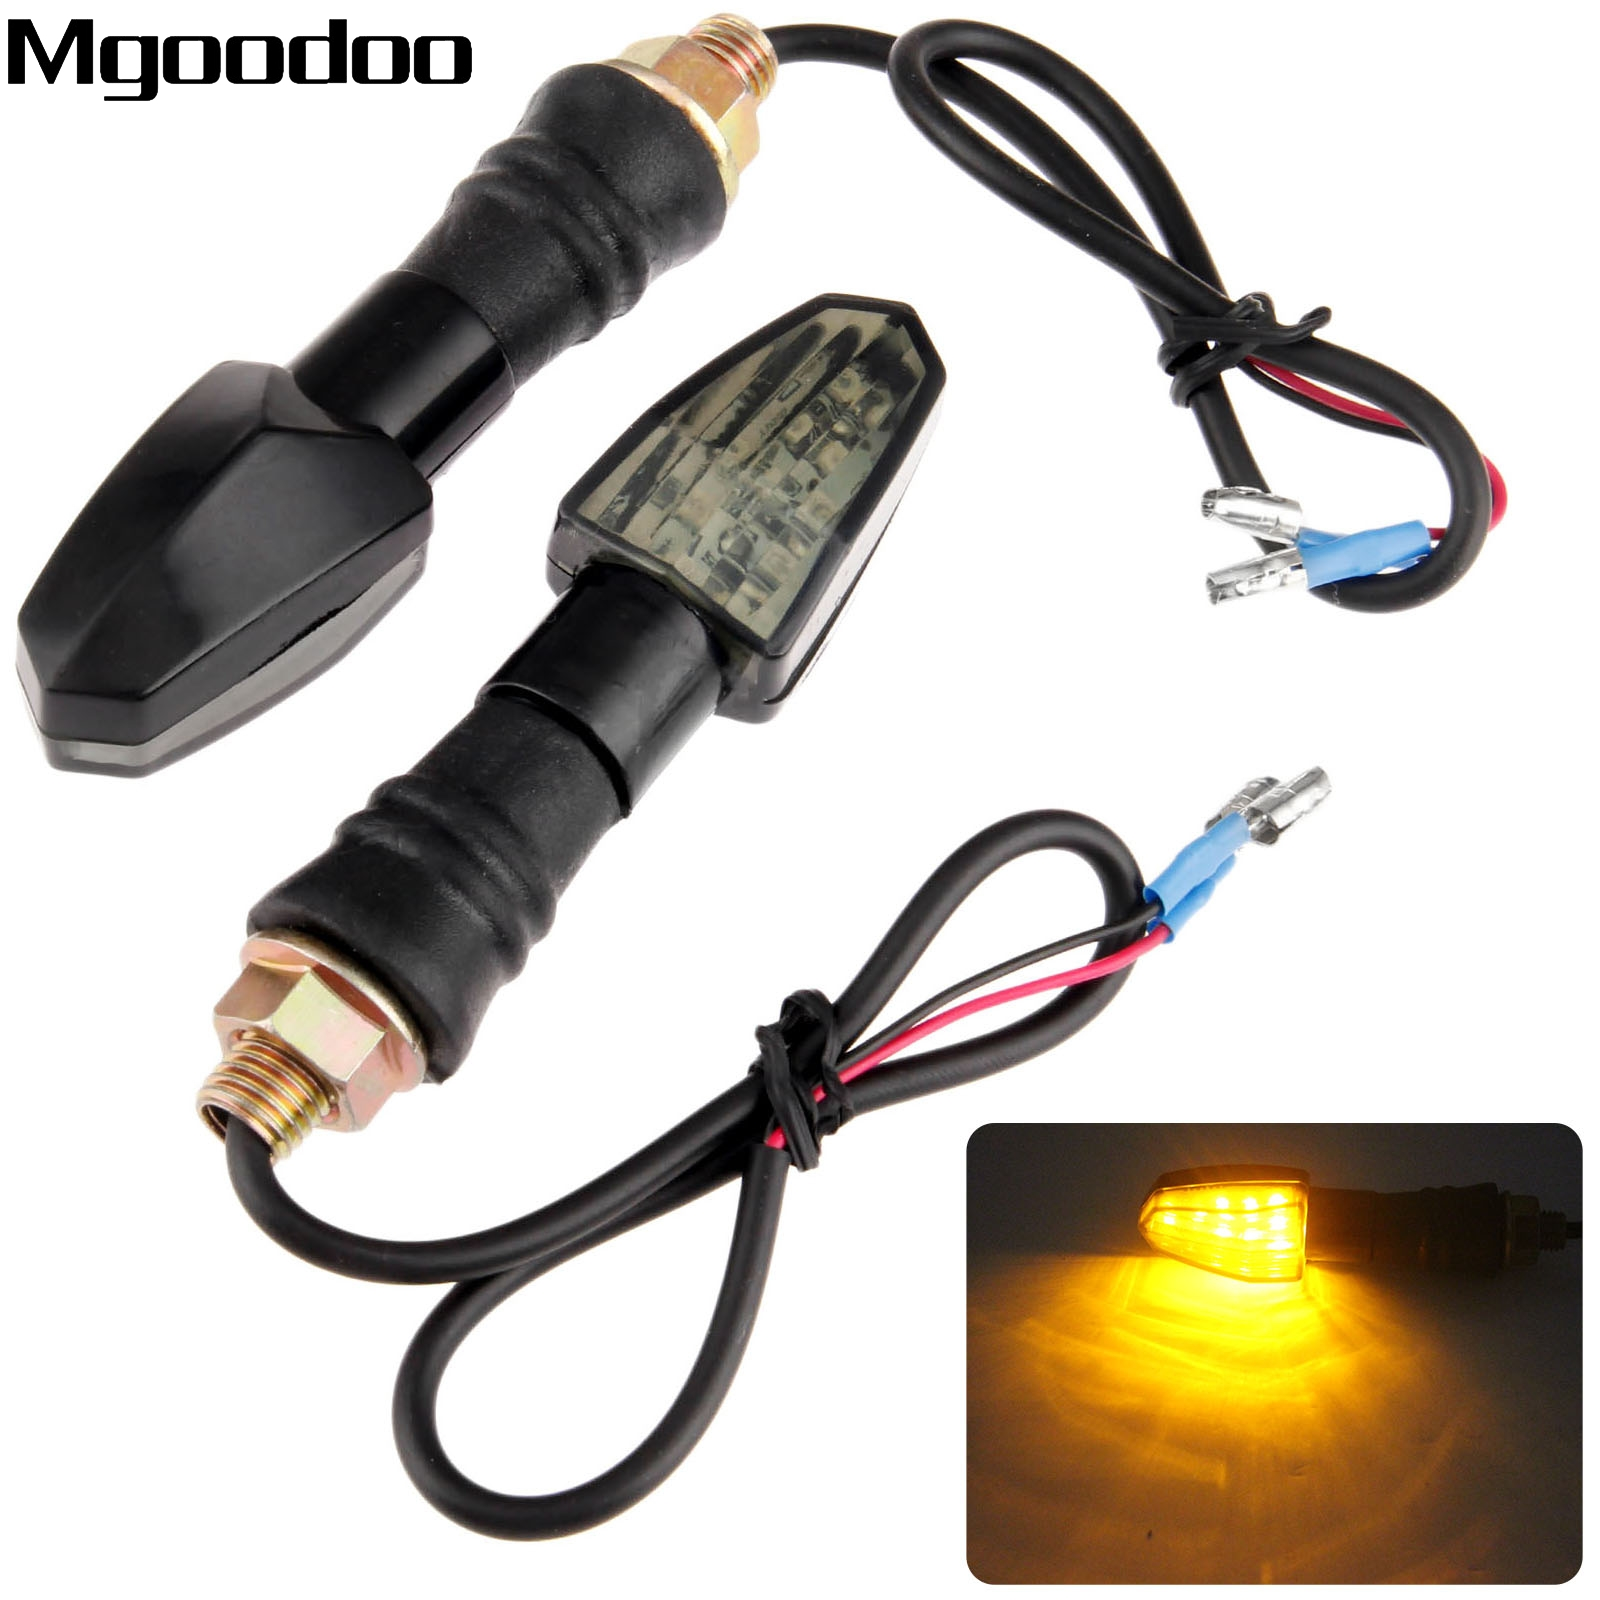 Mgoodoo 2x 12V Motorcycle Universal Turn Signal Indicator Lights Yellow LED Lights Blinker Lamp Flashers Smoked For Honda Suzuki